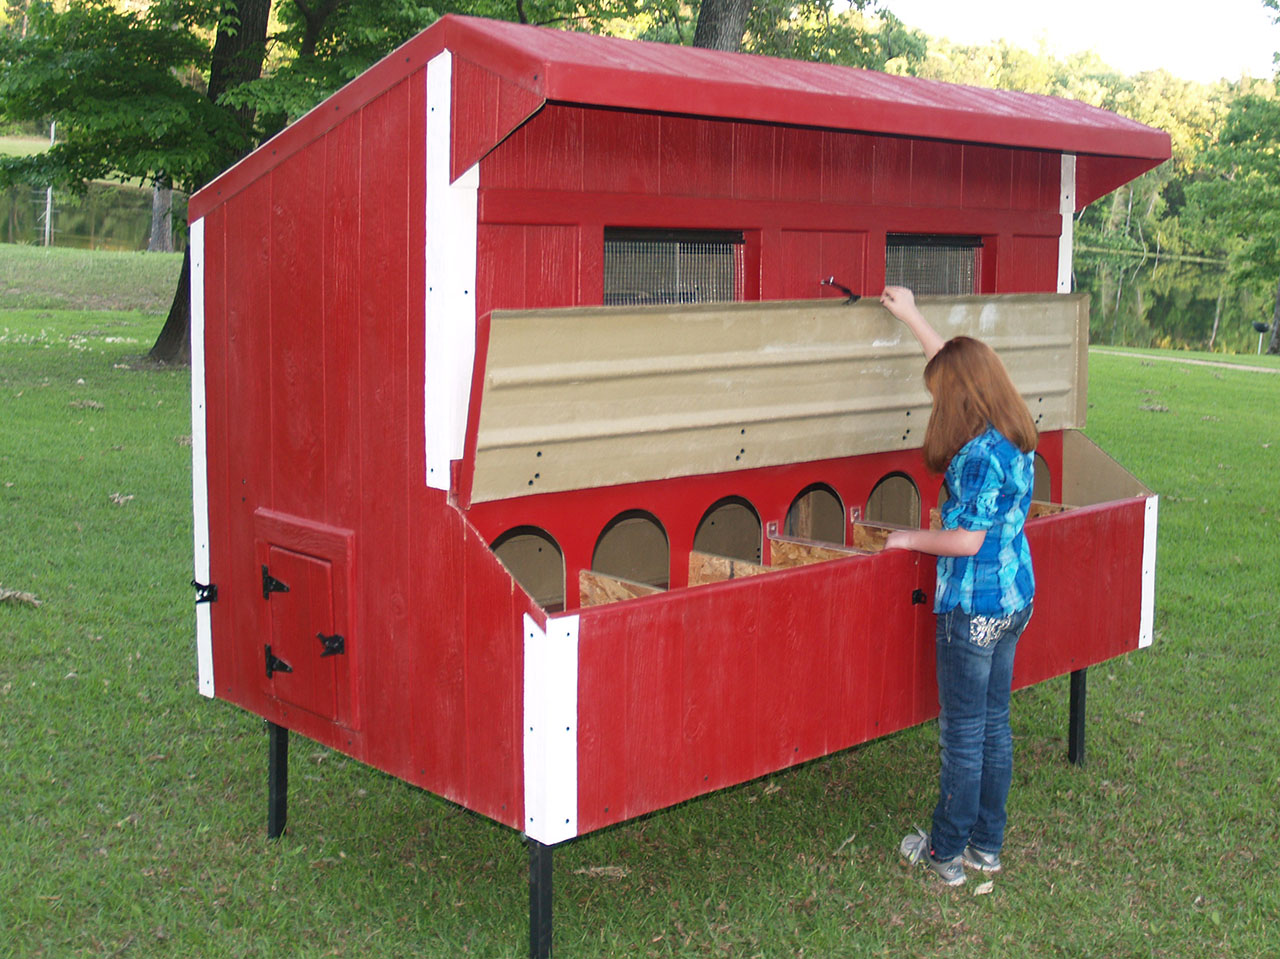 Eggstreme Chicken Coops 8 39 X 5 39 Traditional Fiberglass